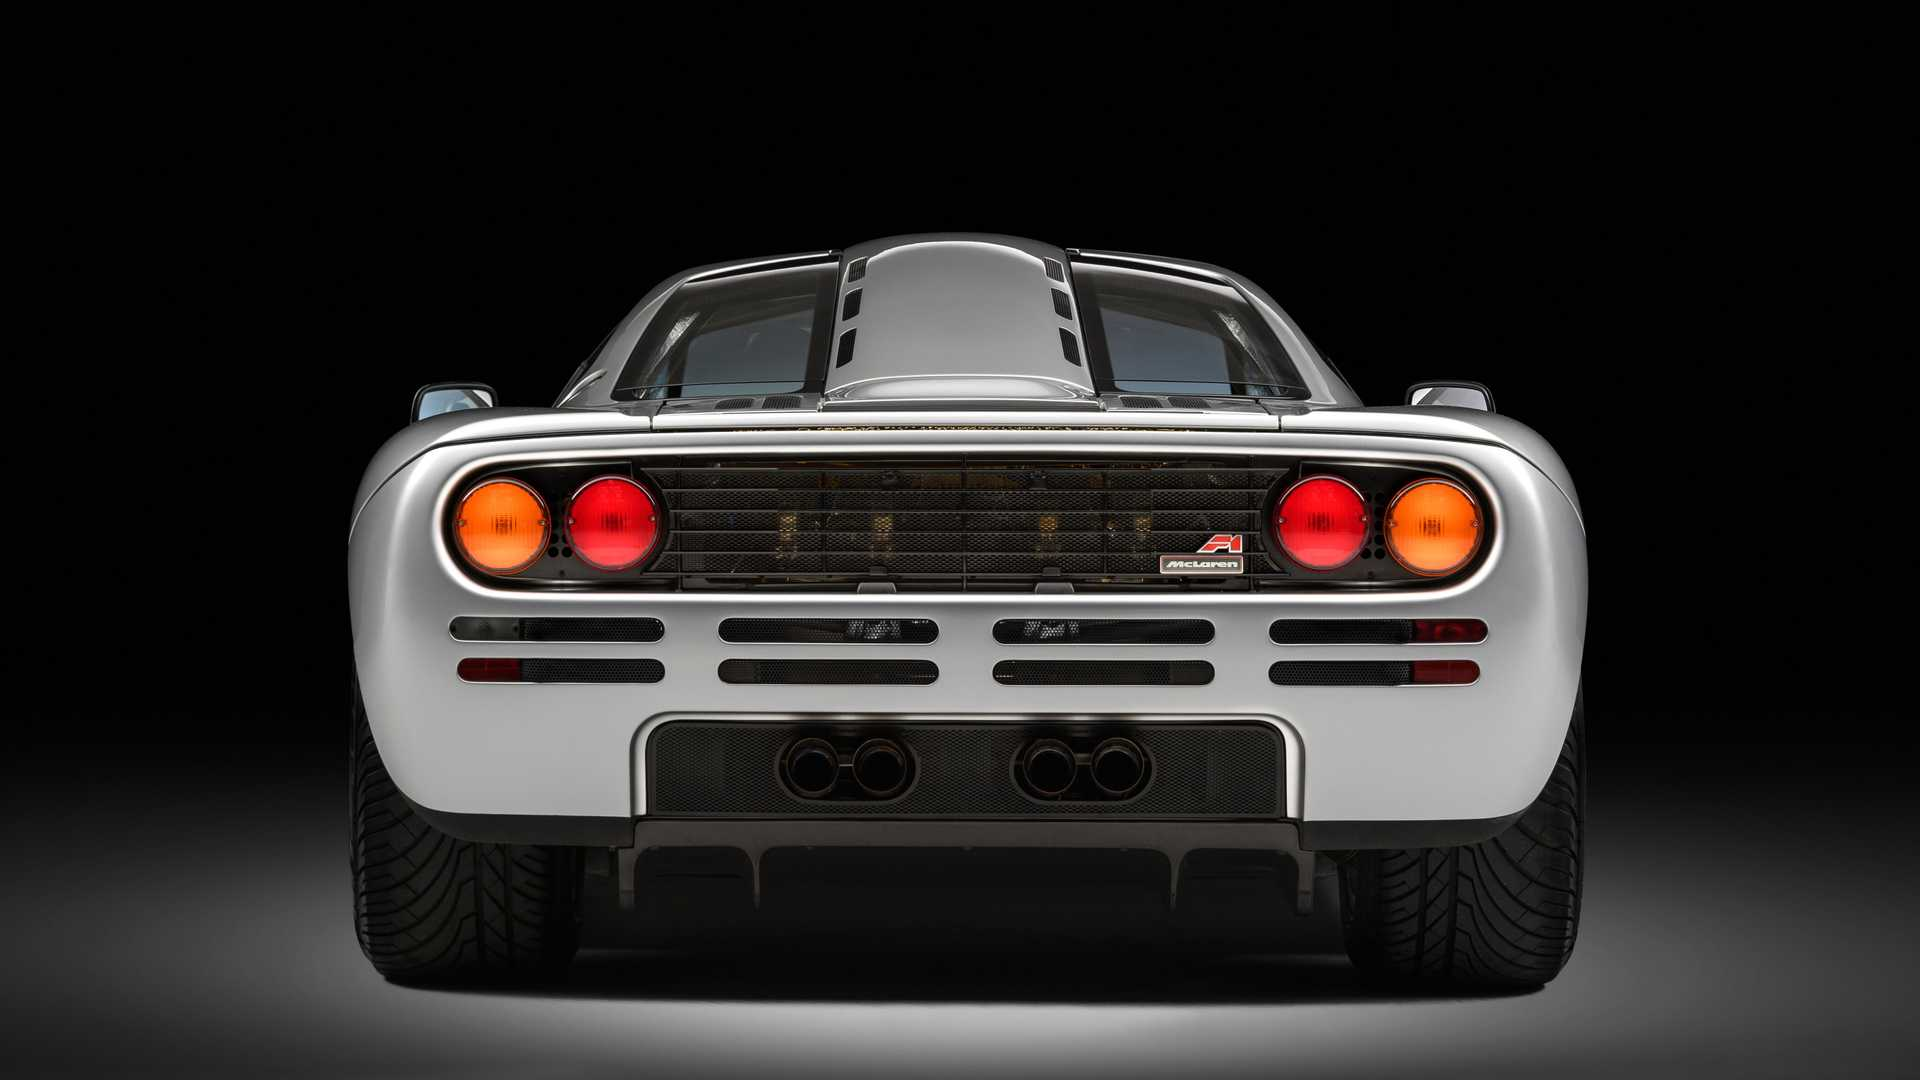 mclaren-f1-chassis-no-63-4